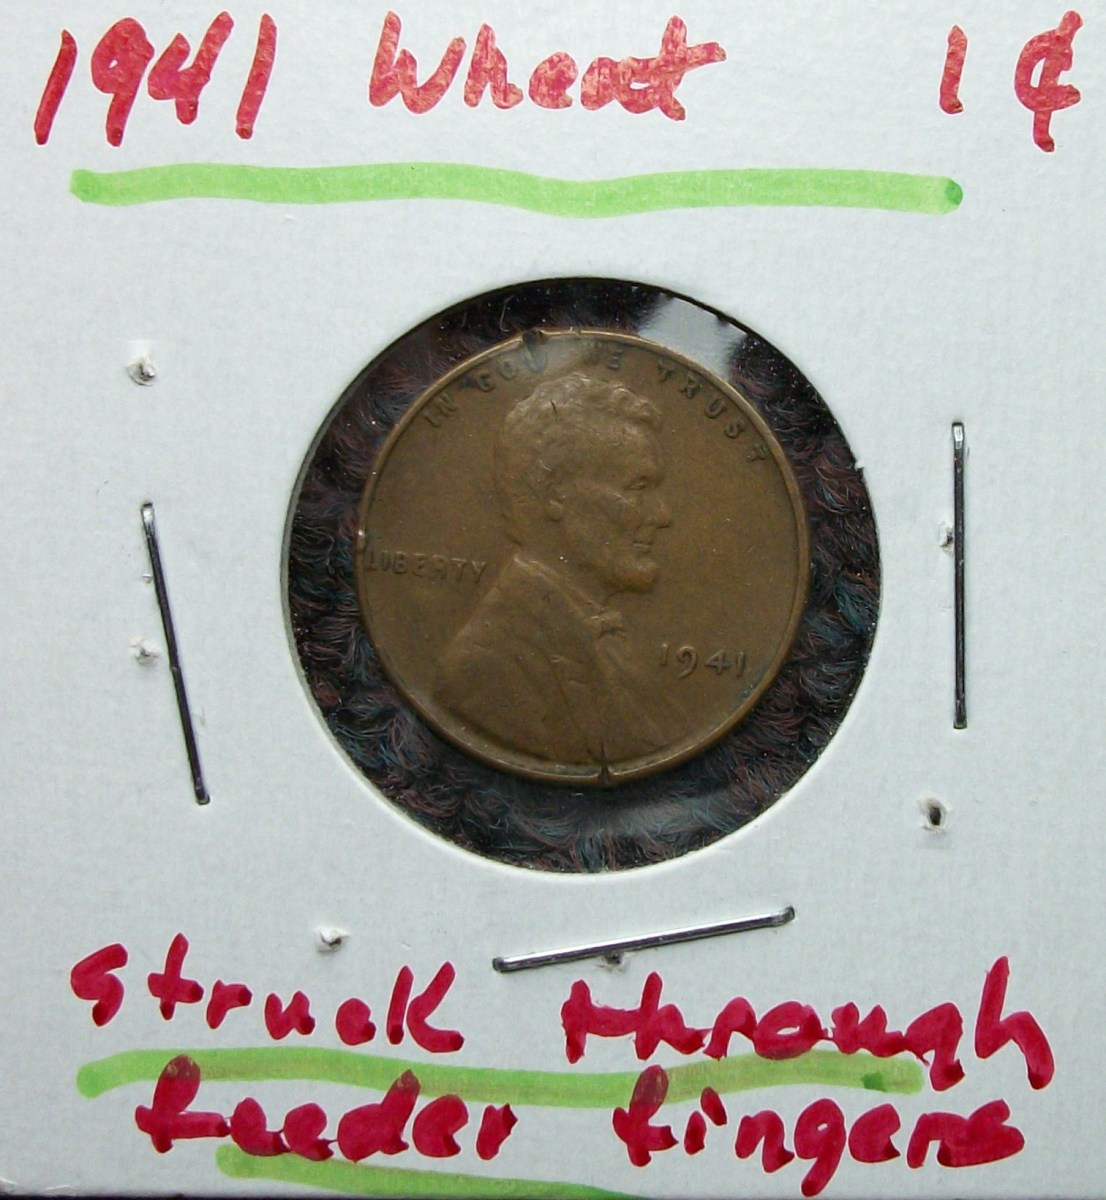 1941 Lincoln Wheat Leaf Penny   Struck on Feeder Fingers Error